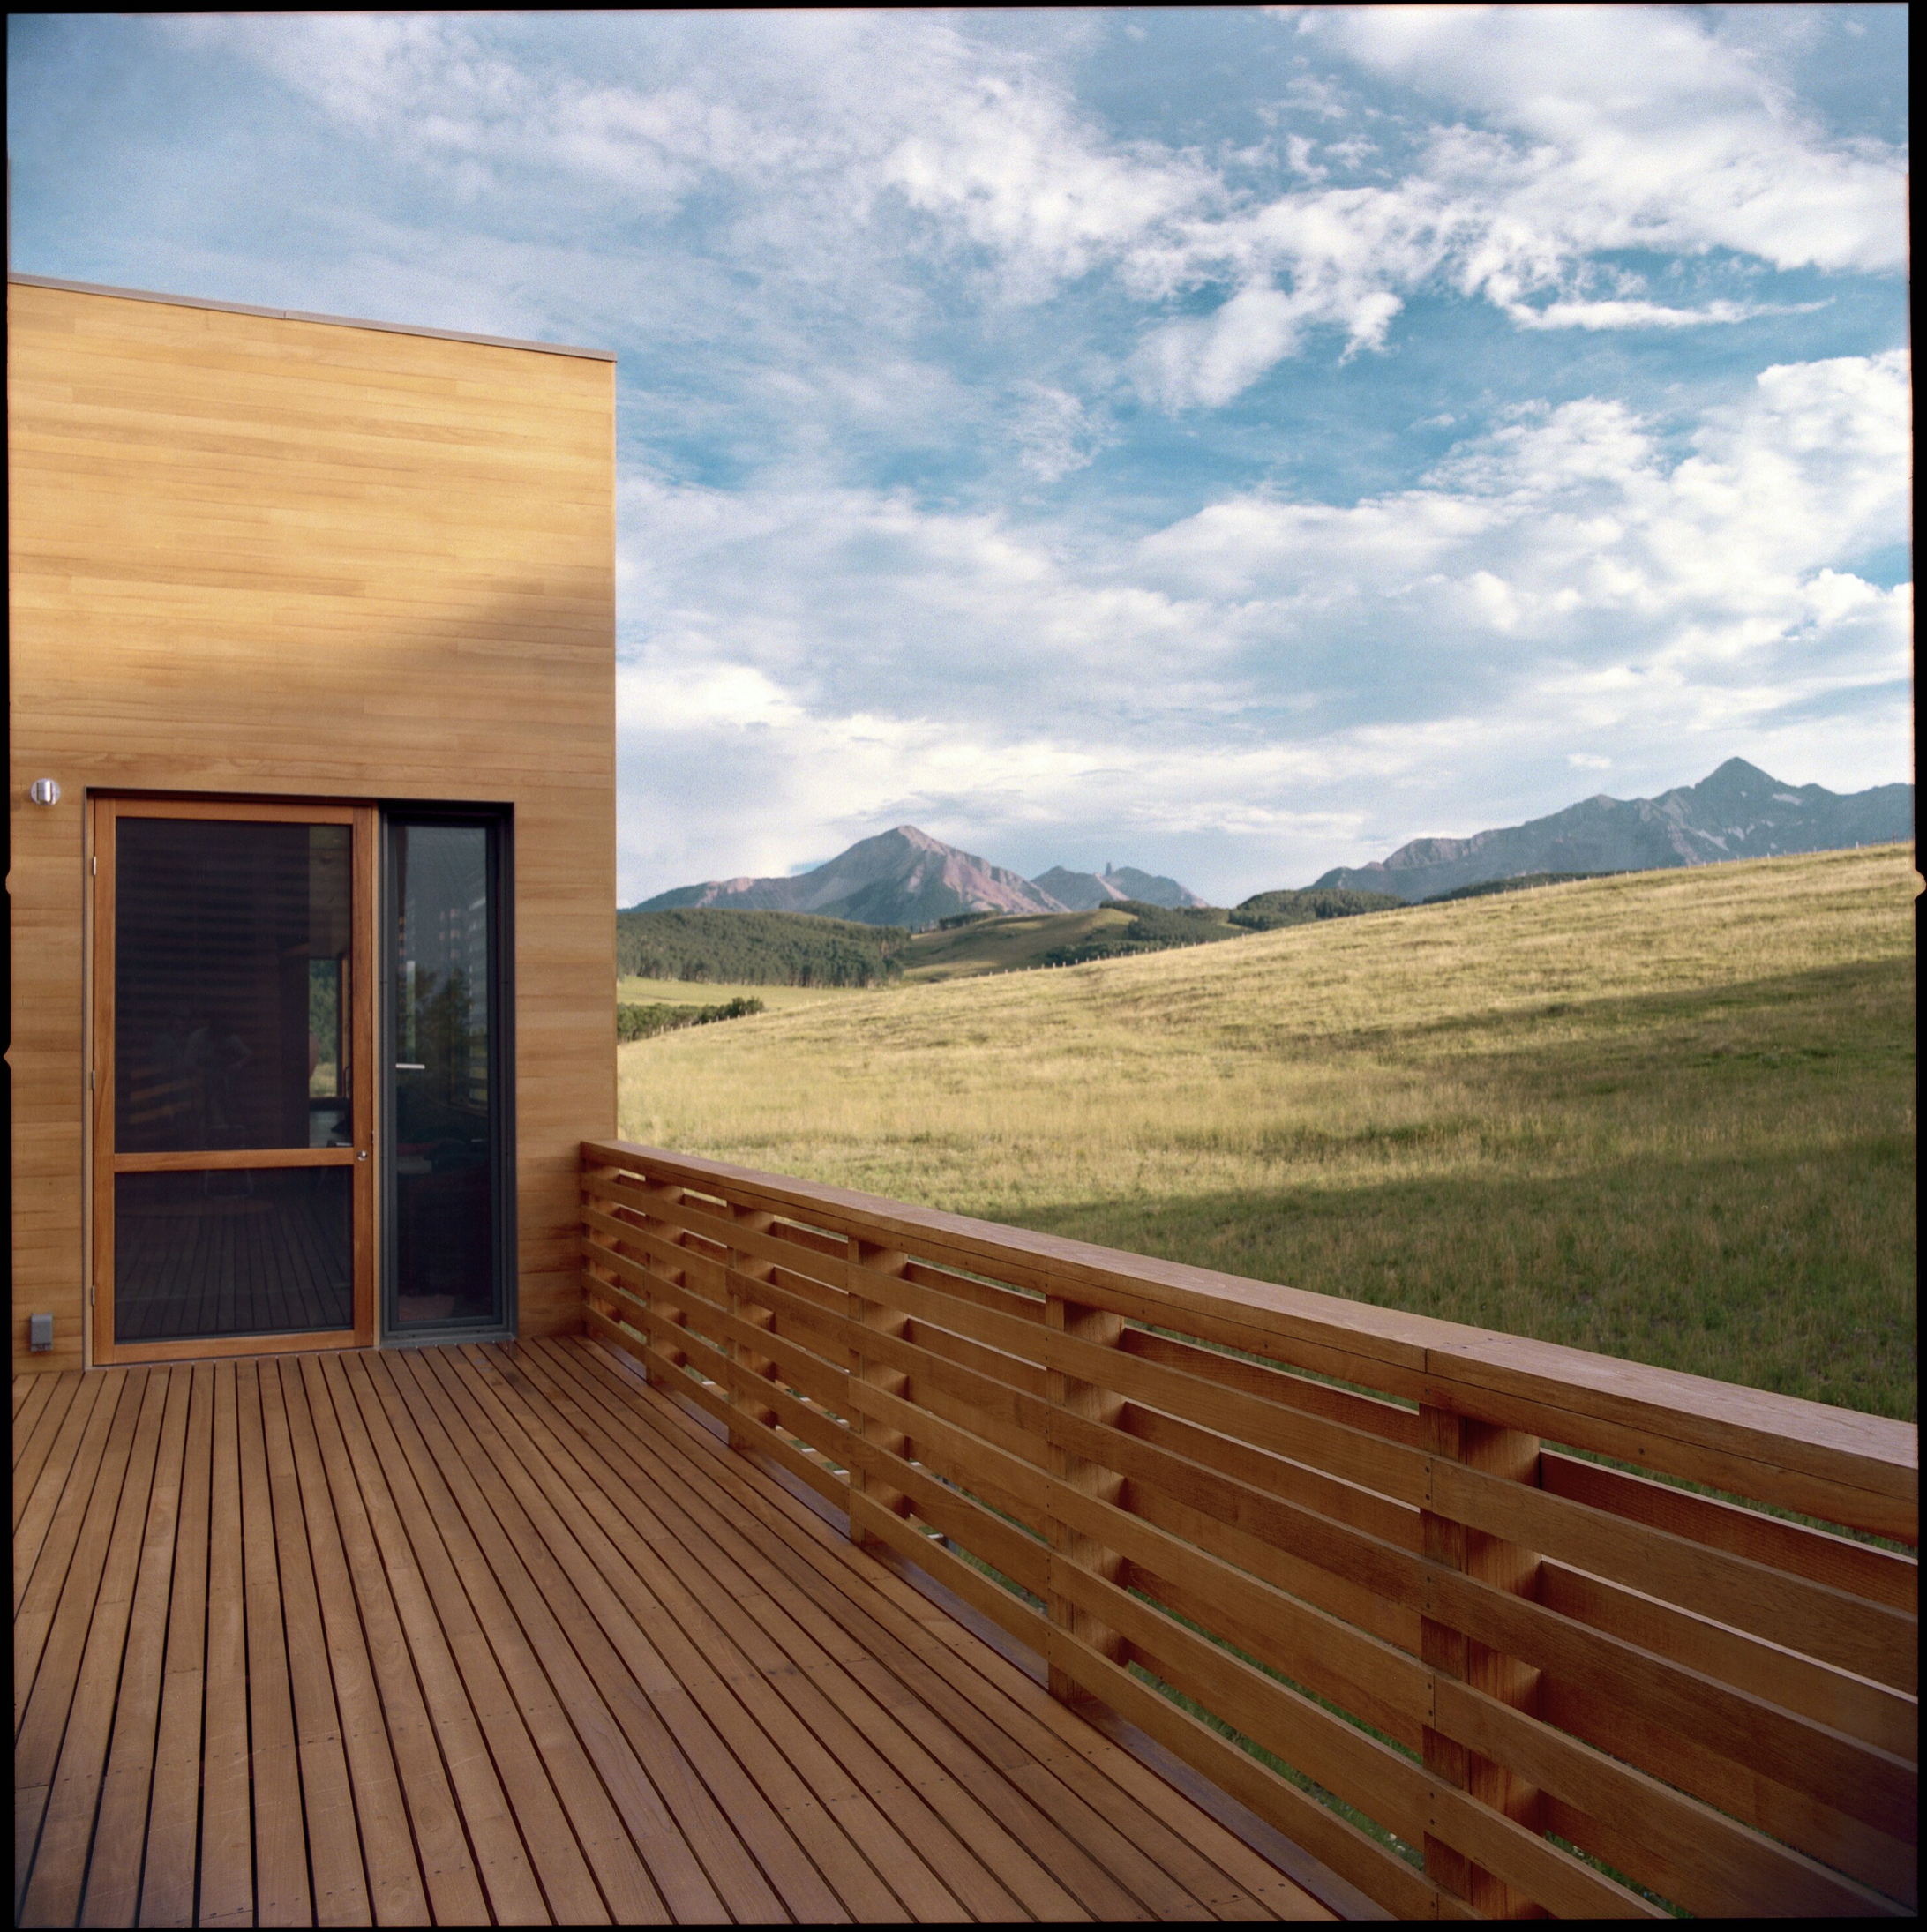 Telluride House, Telluride, Colorado, Maya Lin architect, 2007